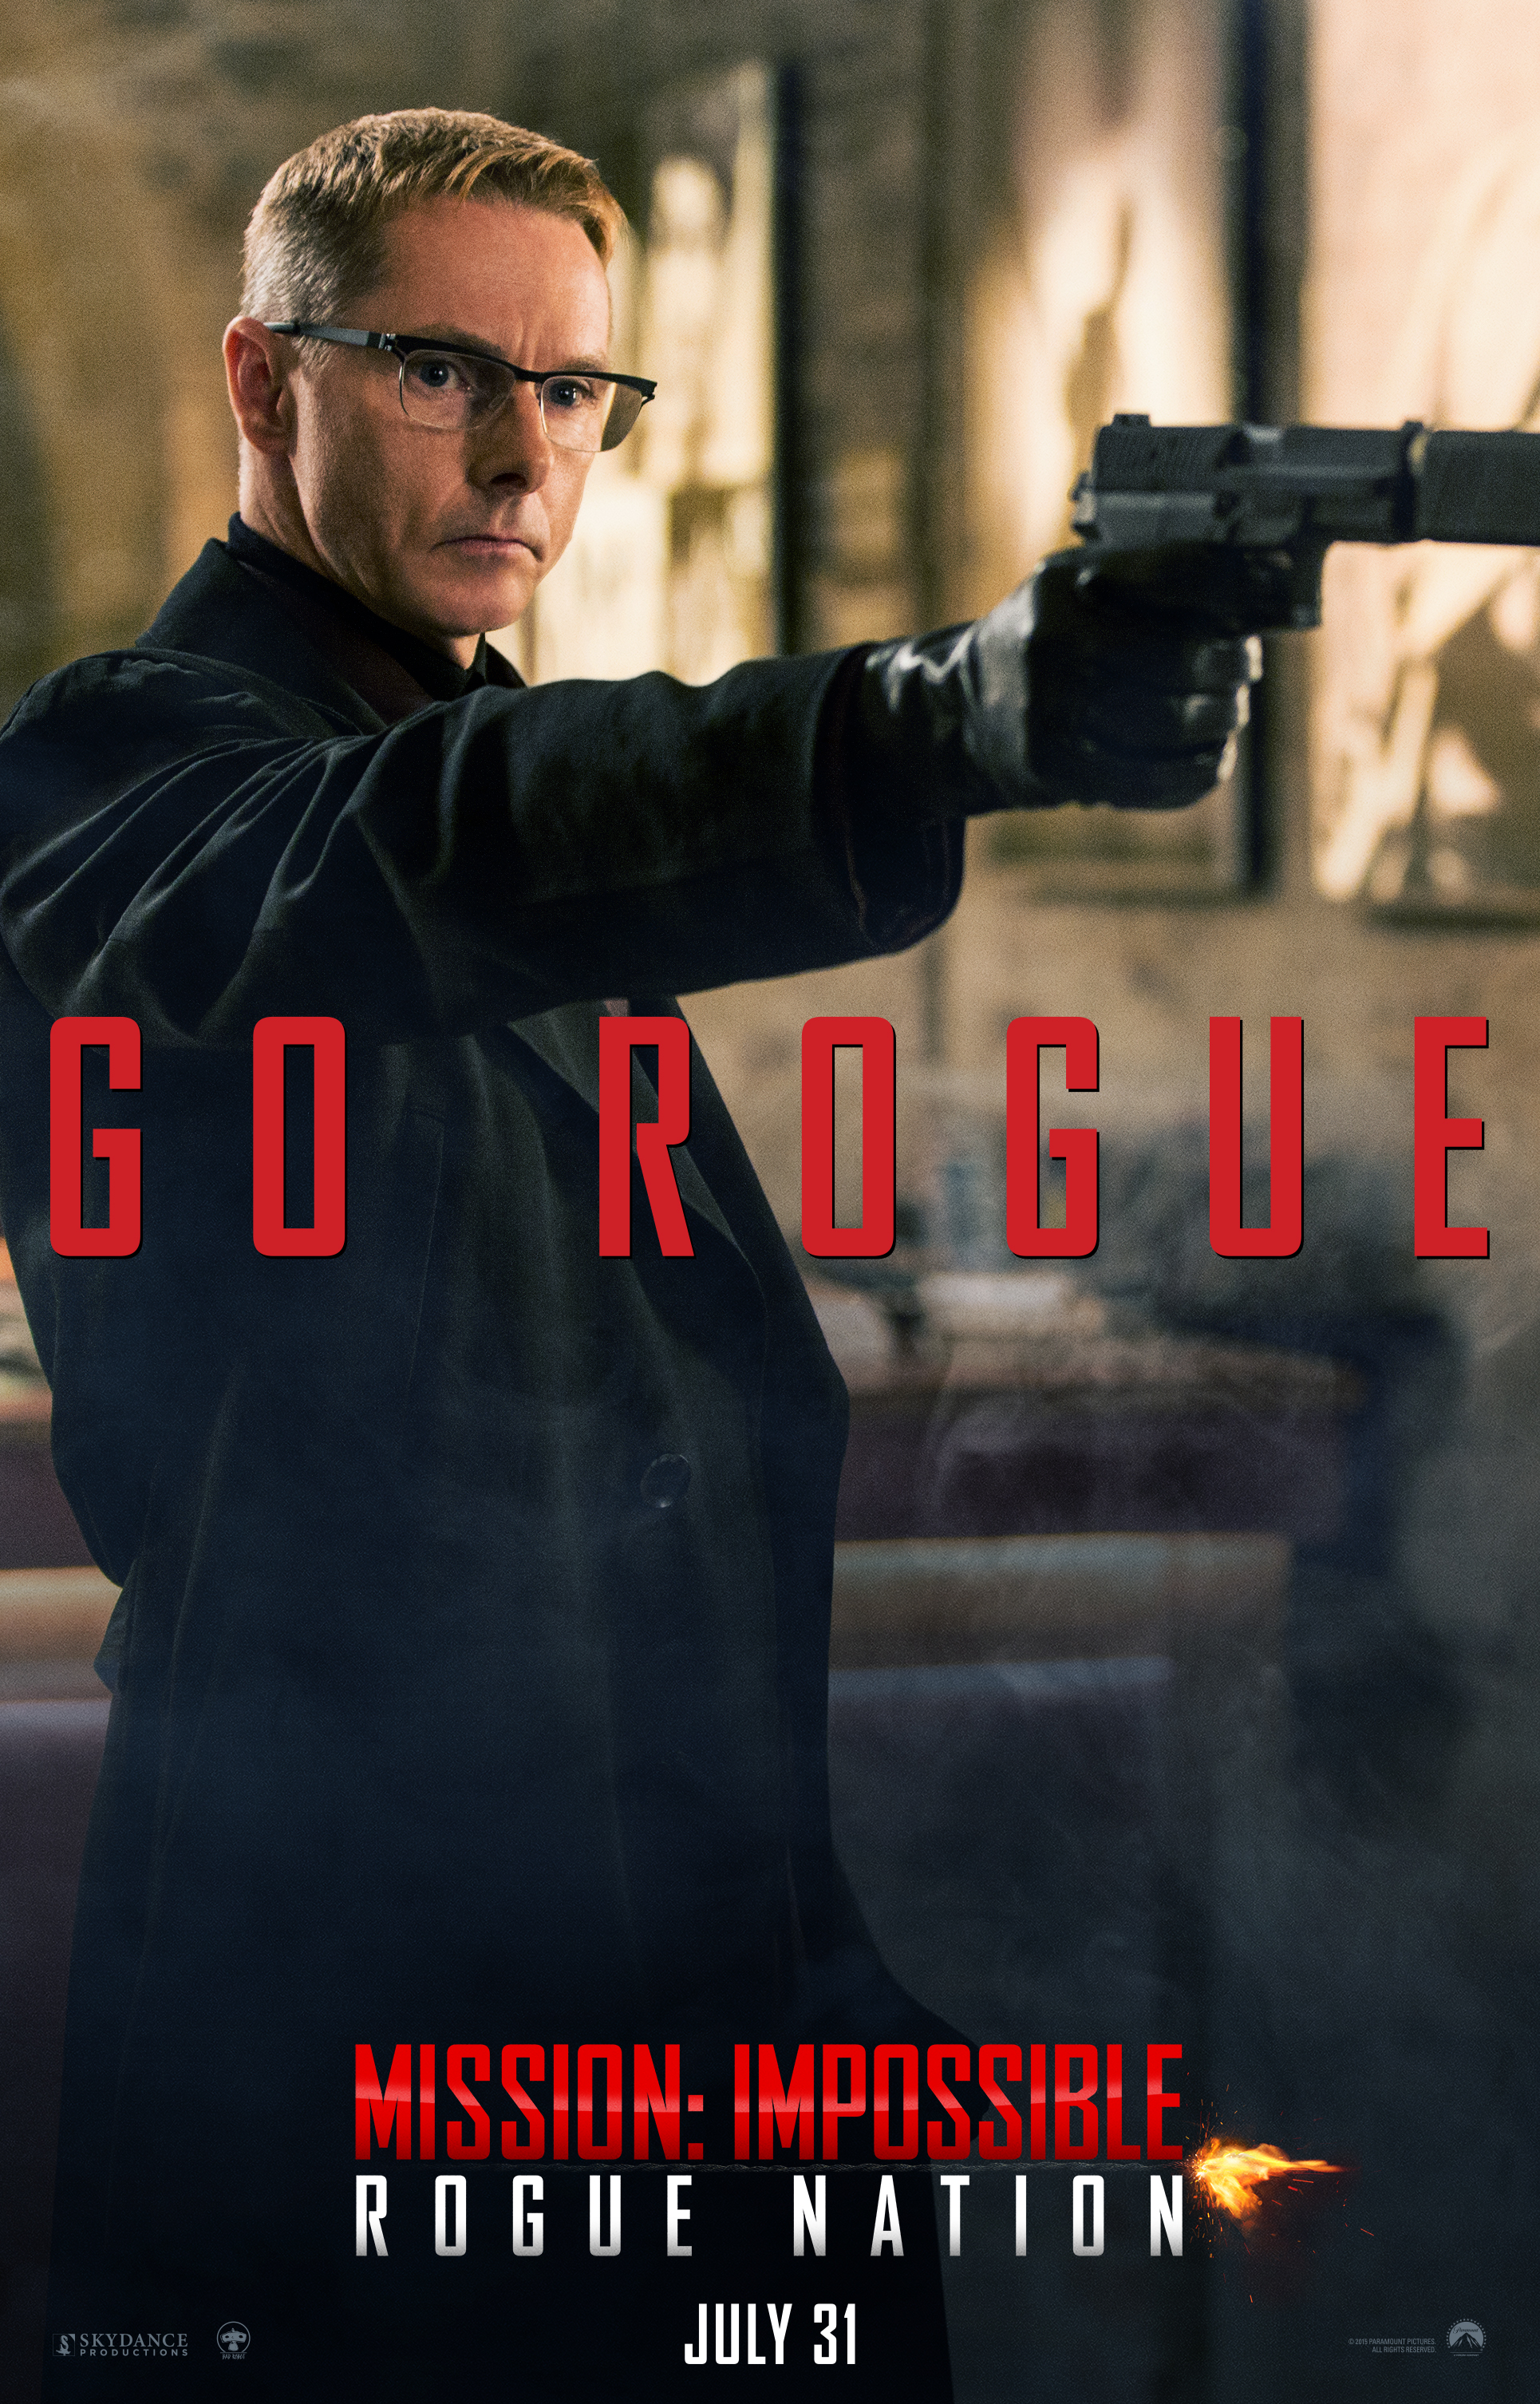 Mission Impossible Rogue Nation poster 6.jpg